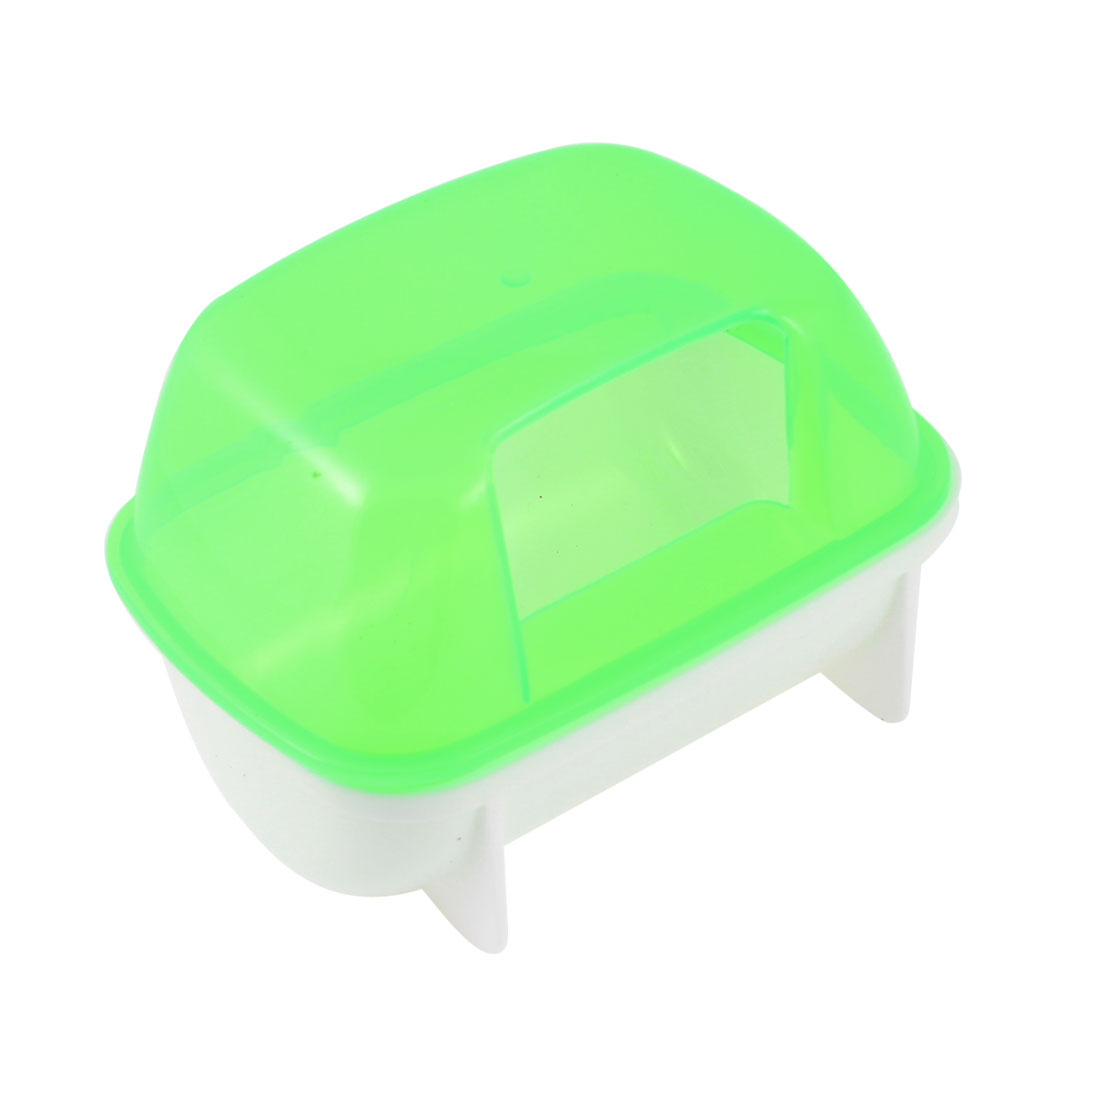 Green White Plastic Small Hamsters Bathing Sand Cage Pet Bathroom 12 x 9 x 9cm by